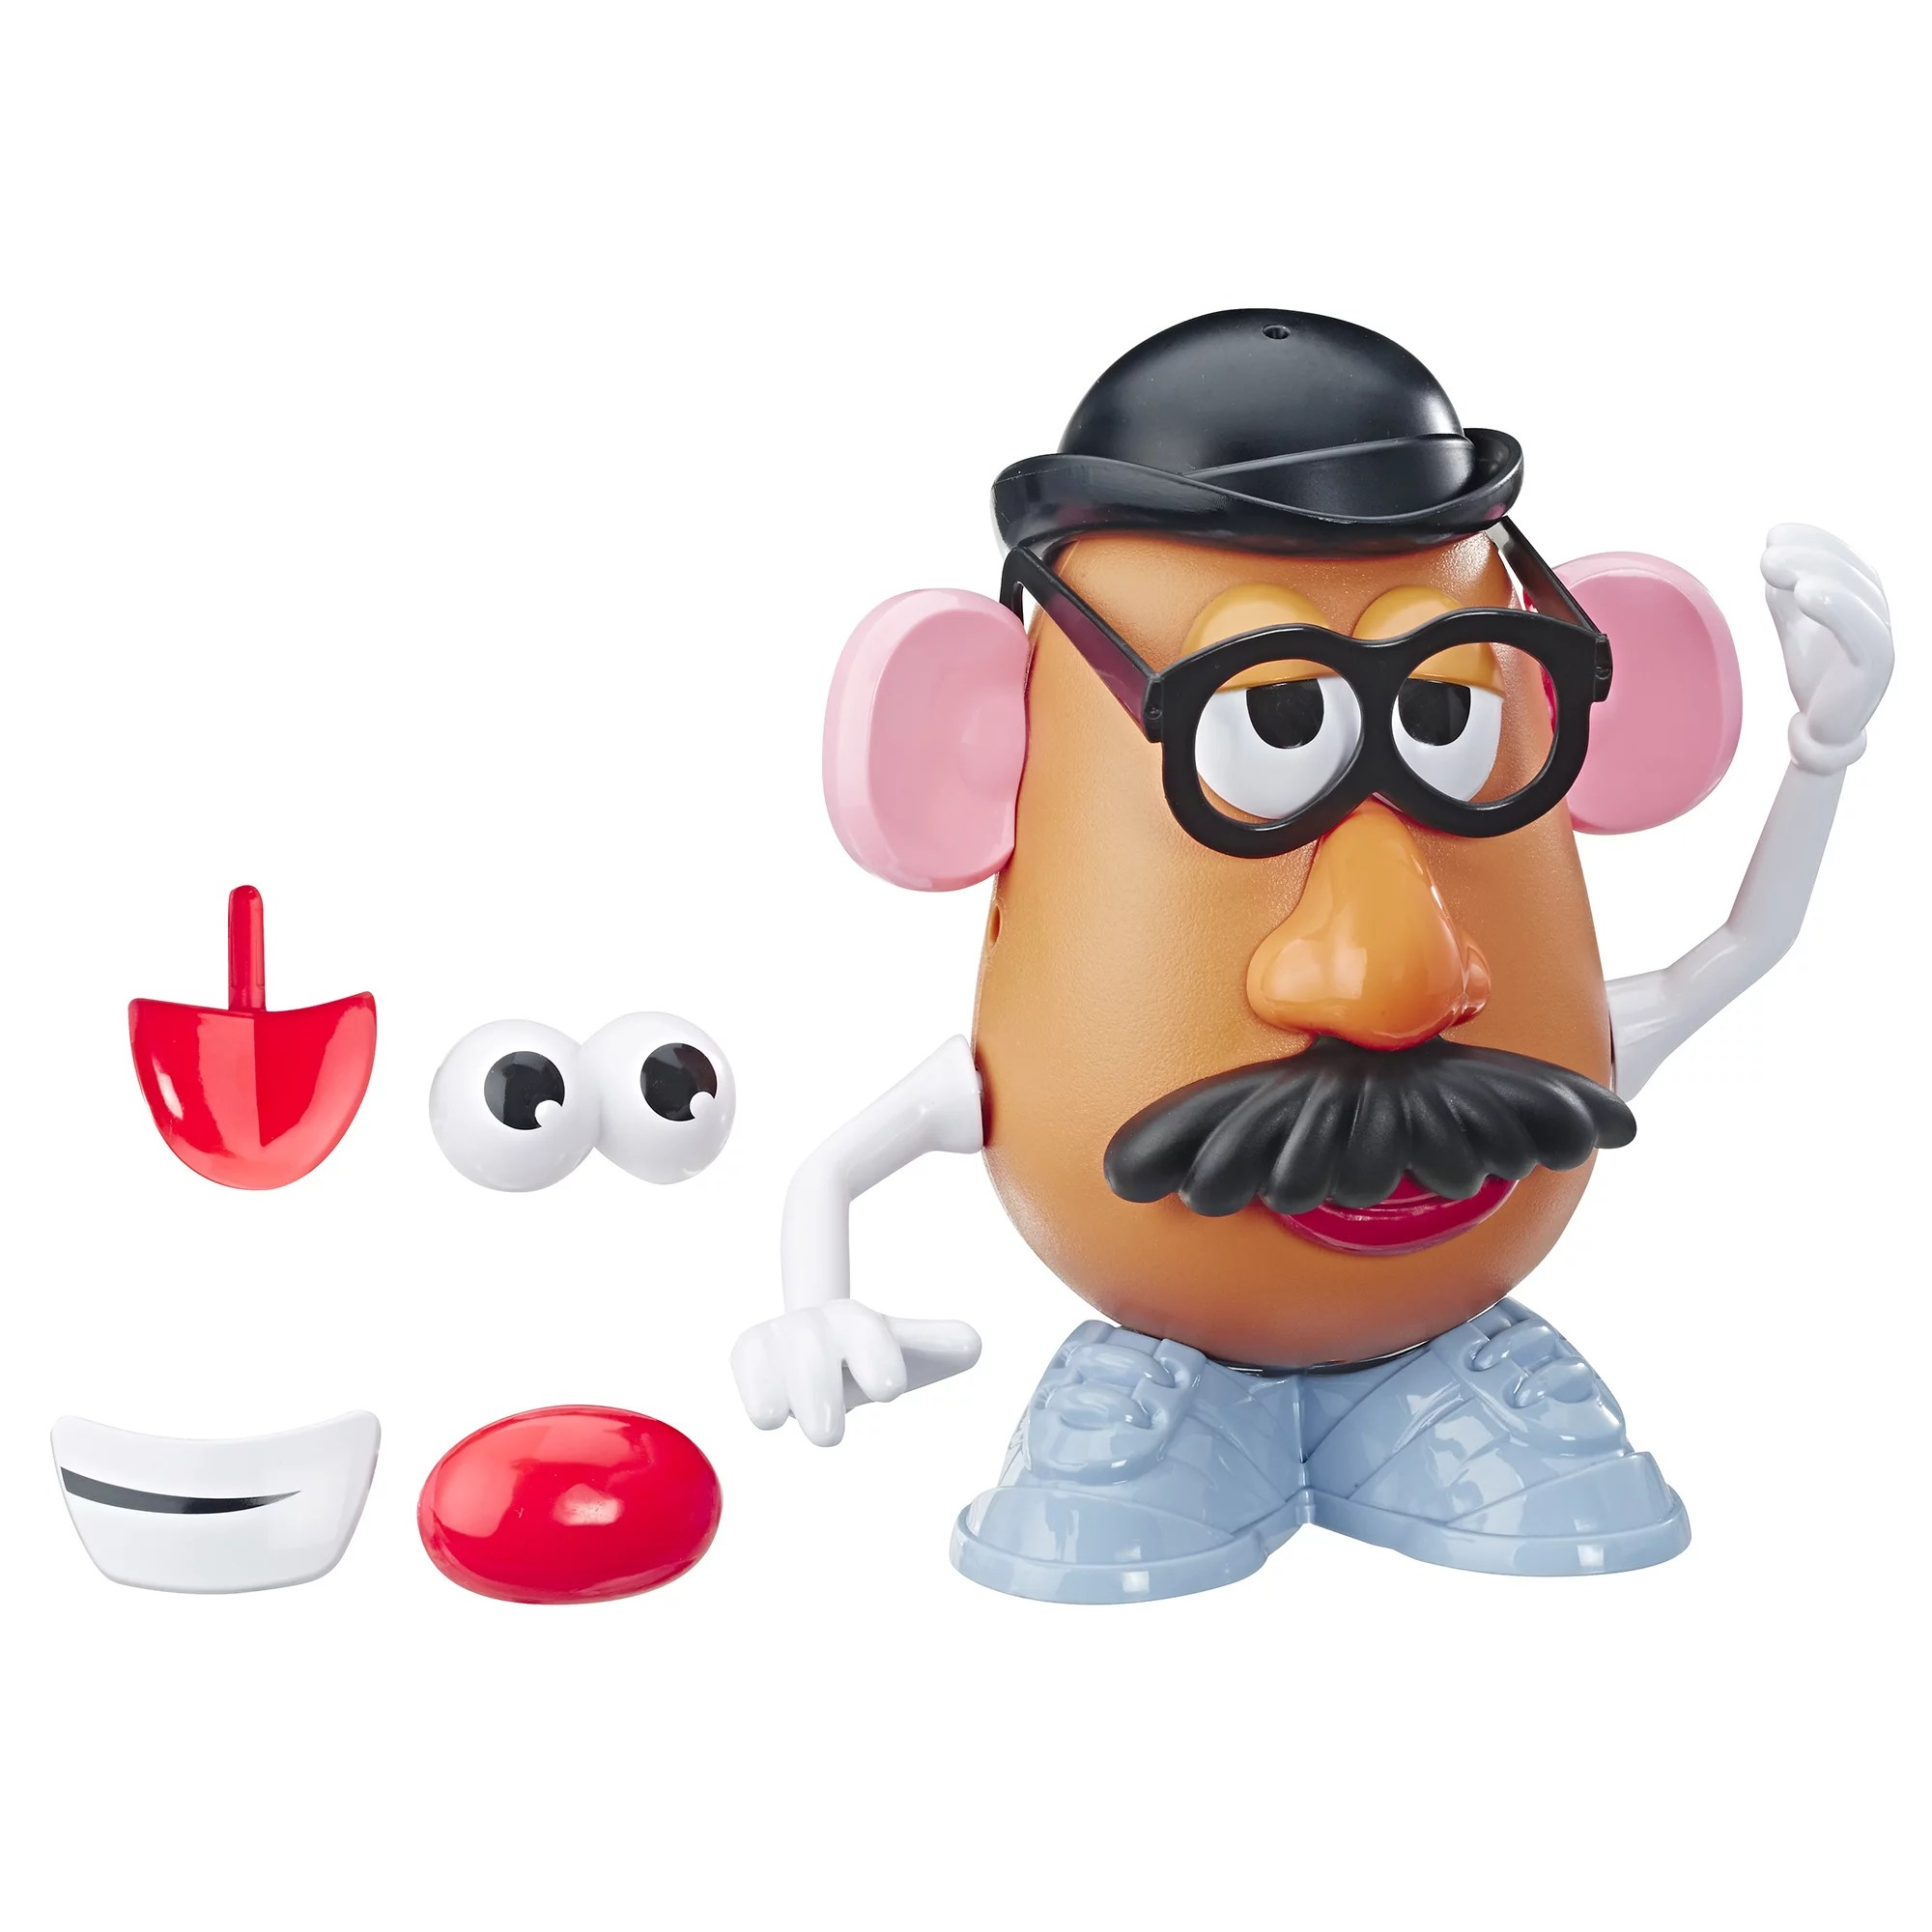 Disney Pixar Toy Story 4 Classic Mr Potato Head Figure